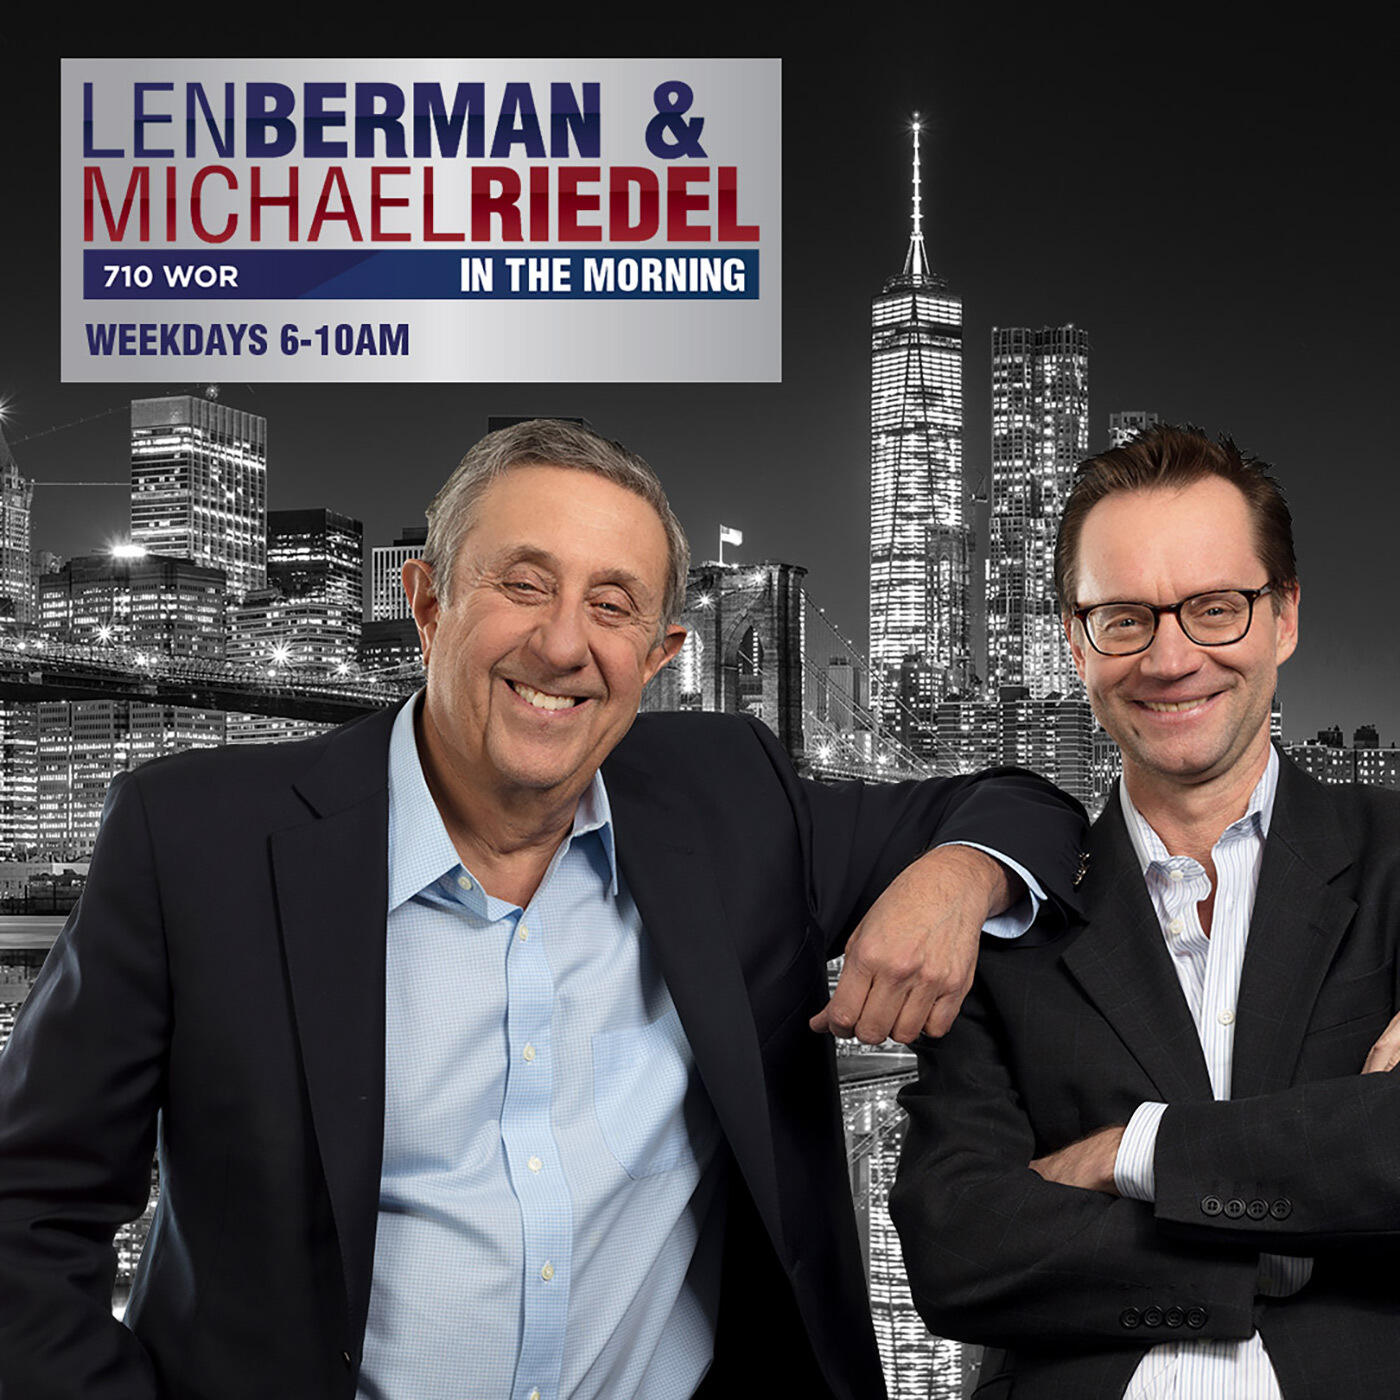 Listen to the Len Berman and Michael Riedel in the Morning Episode - Lynda Carter on iHeartRadio | iHeartRadio